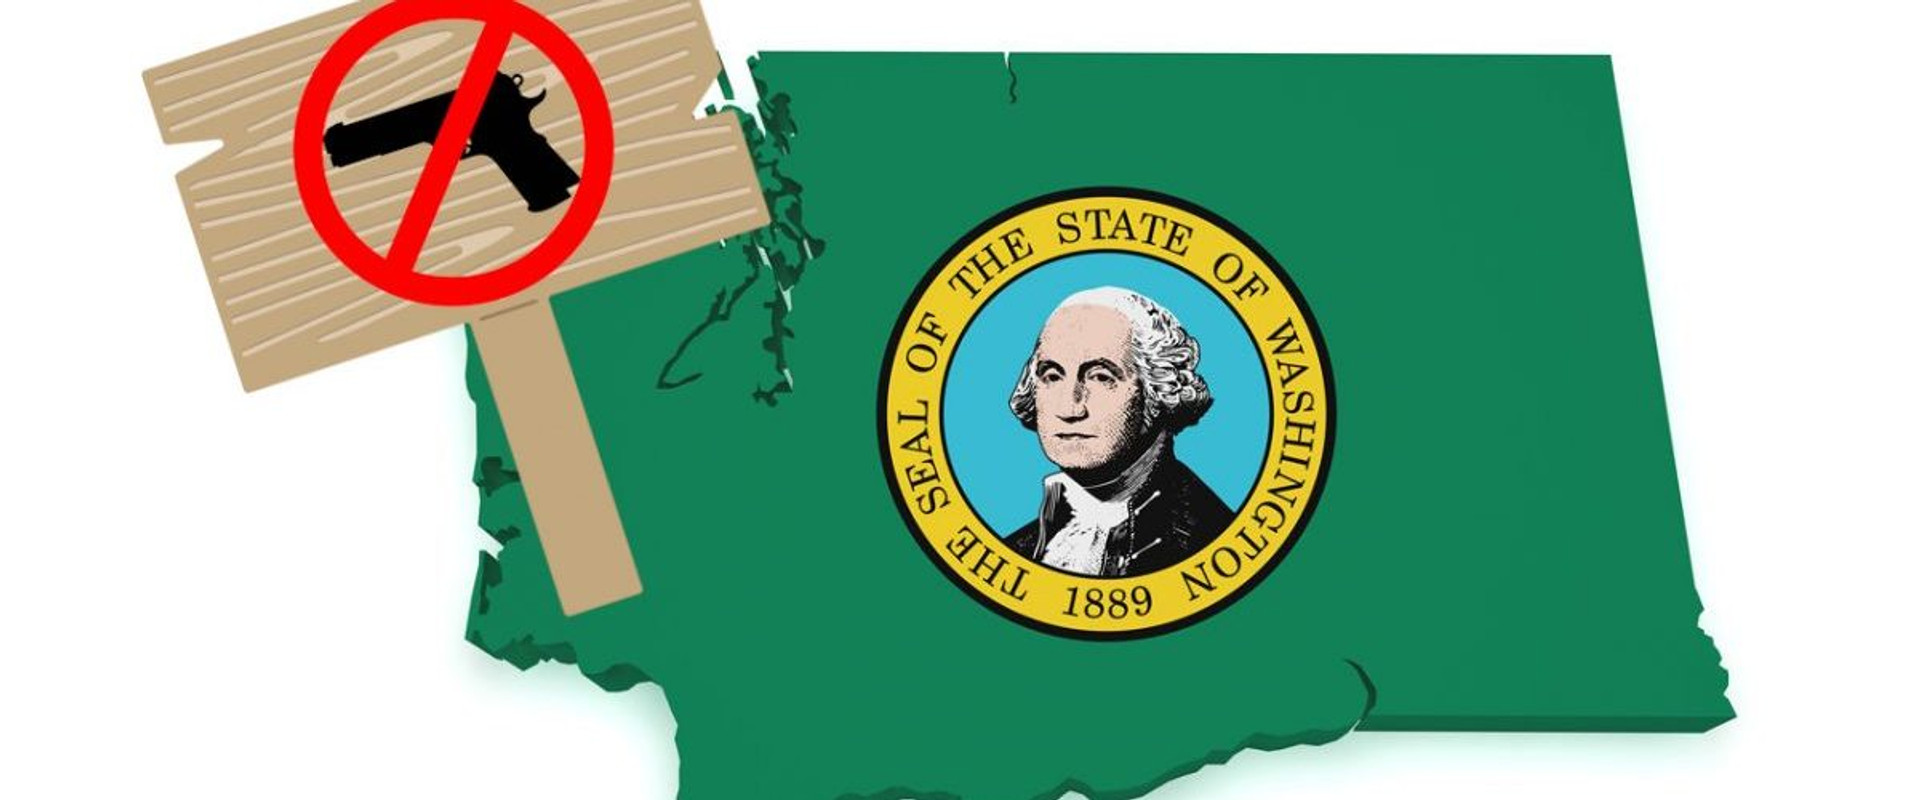 New laws in washington state